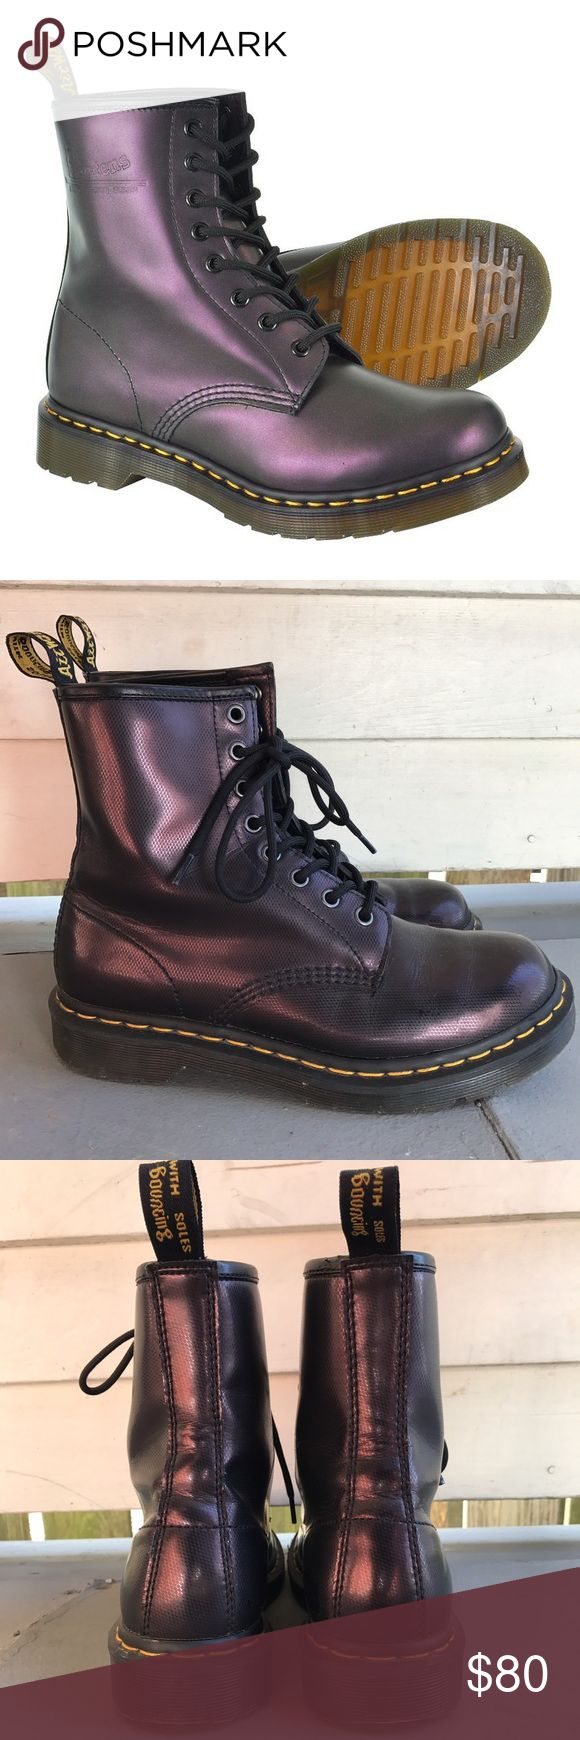 Purple doc marten boots Barely worn metallic purple doc martens! In great condition and look slightly sparkly in the sun Dr. Martens Shoes Lace Up Boots